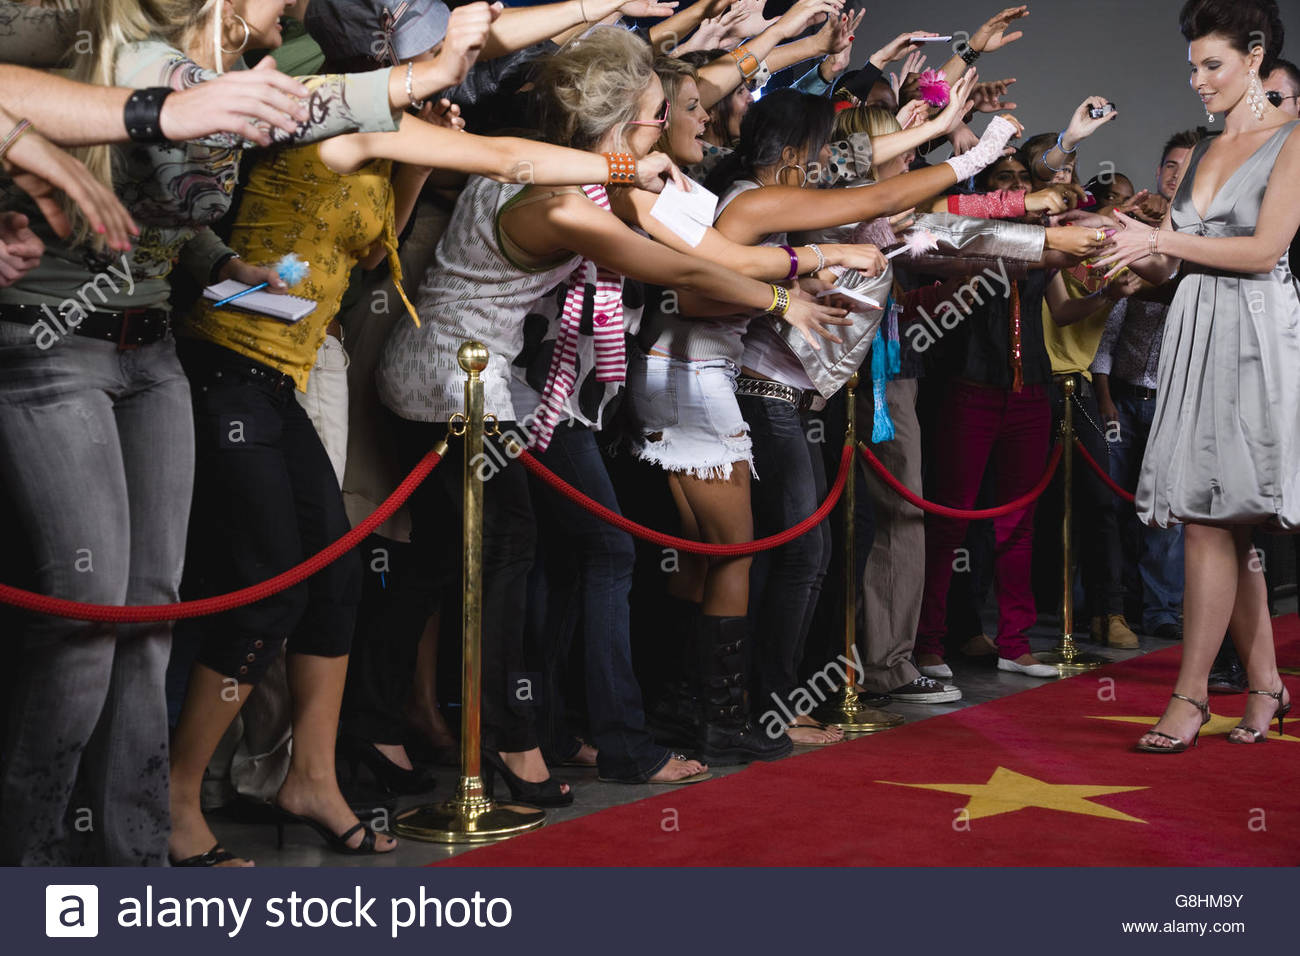 Celebrity signing autograph for screaming fans - Stock Image